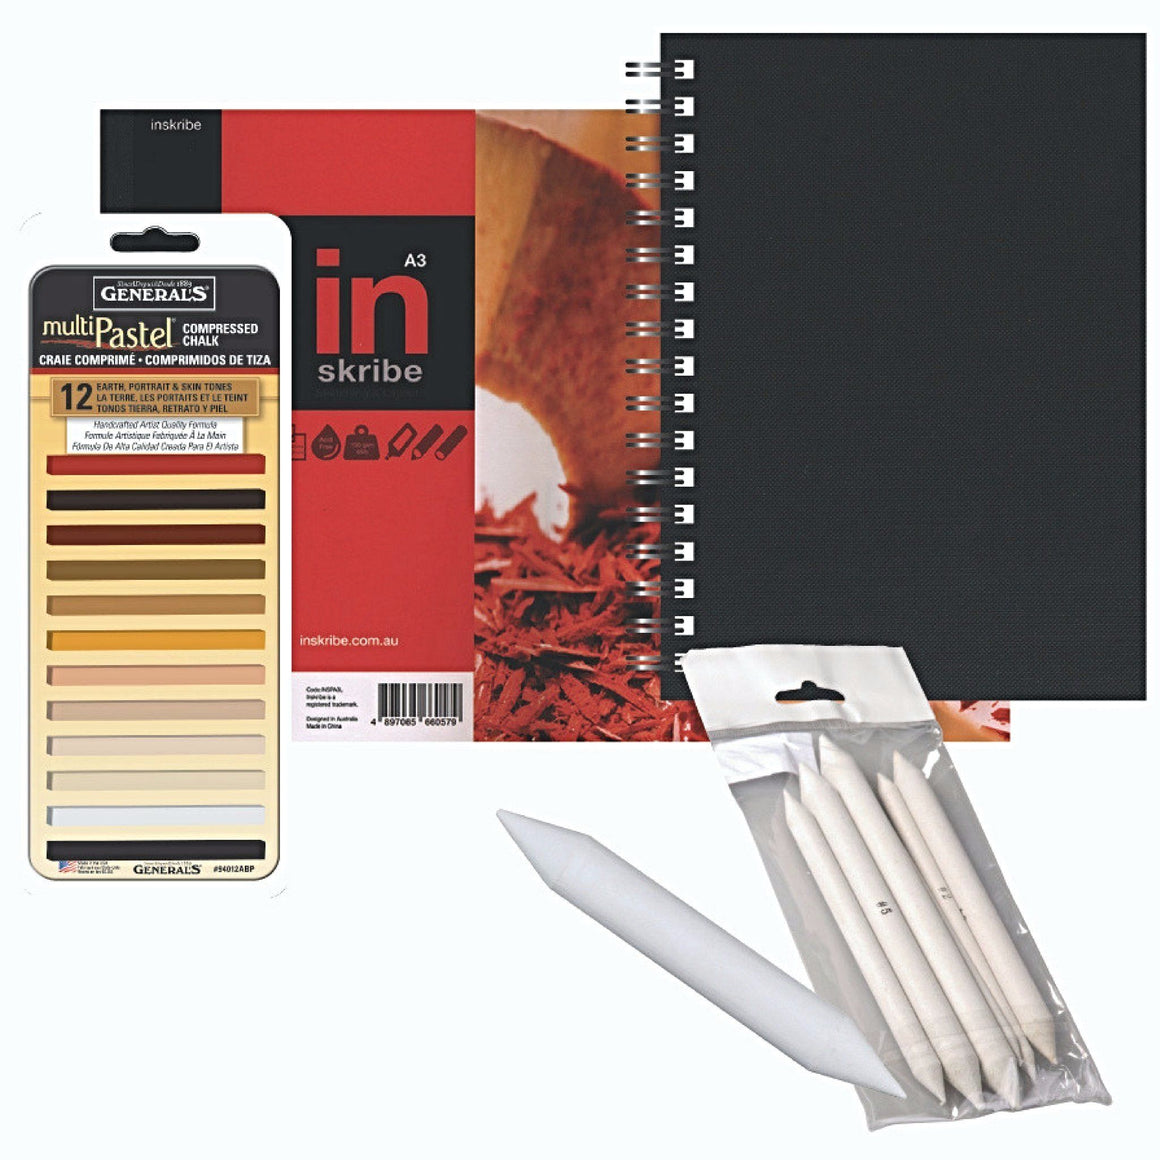 The Generals Pastel Set can be used to create vibrant drawings or add subtle colours to charcoal or graphite drawings. These pastel sticks provide extra smooth, pure pigment perfect for fine art drawing.  Set consists of the following items:  1 x Generals Compressed Pastel Box of 12 square sticks 1 x A4 Inskribe Portrait Black Wire-bound Sketchbook 1 x A3 Inskribe Paper Pad, medium grain acid-free paper, 62 sheets 1 x Set of 6 Paper Stumps 1 x Jumbo Stump